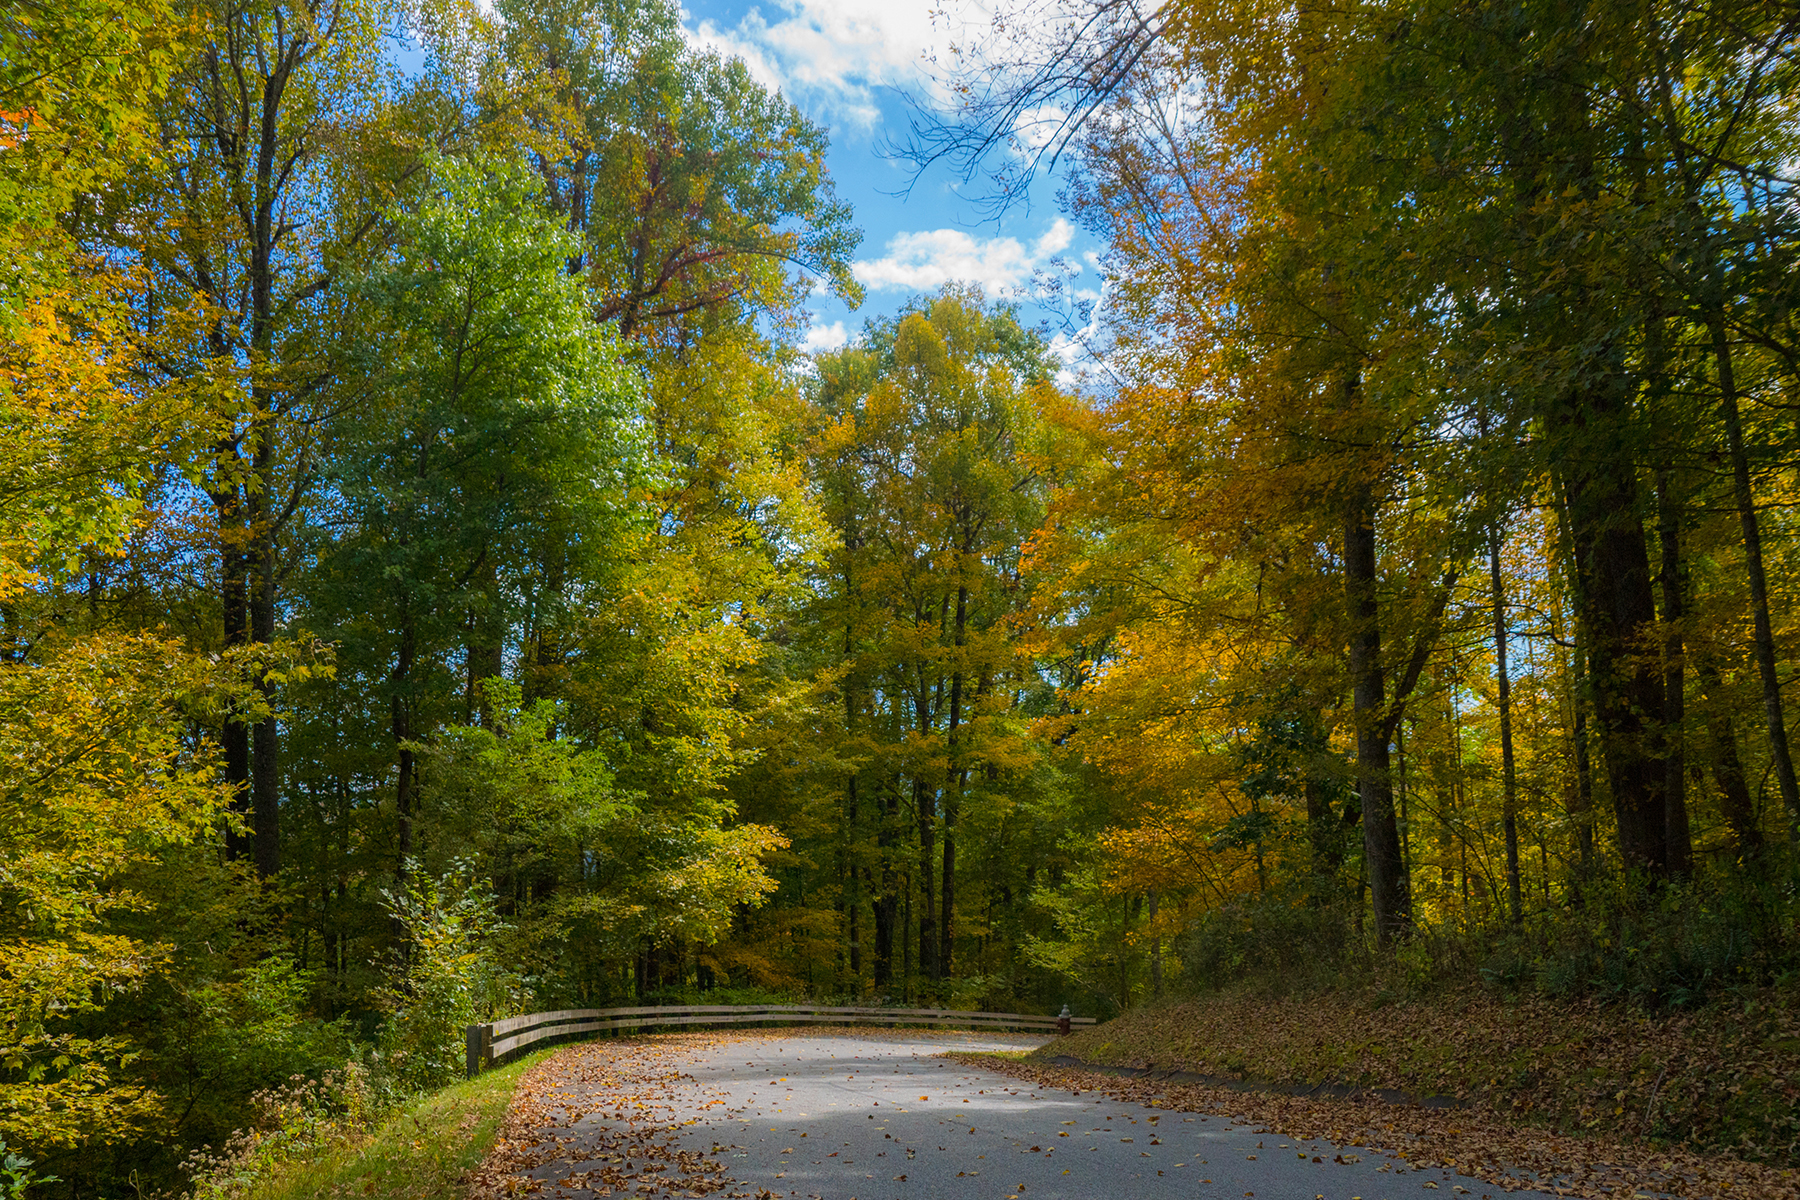 Land for Sale at BOONE - COUNCILL OAKS Lot 43 Brookside Dr Boone, North Carolina 28607 United States